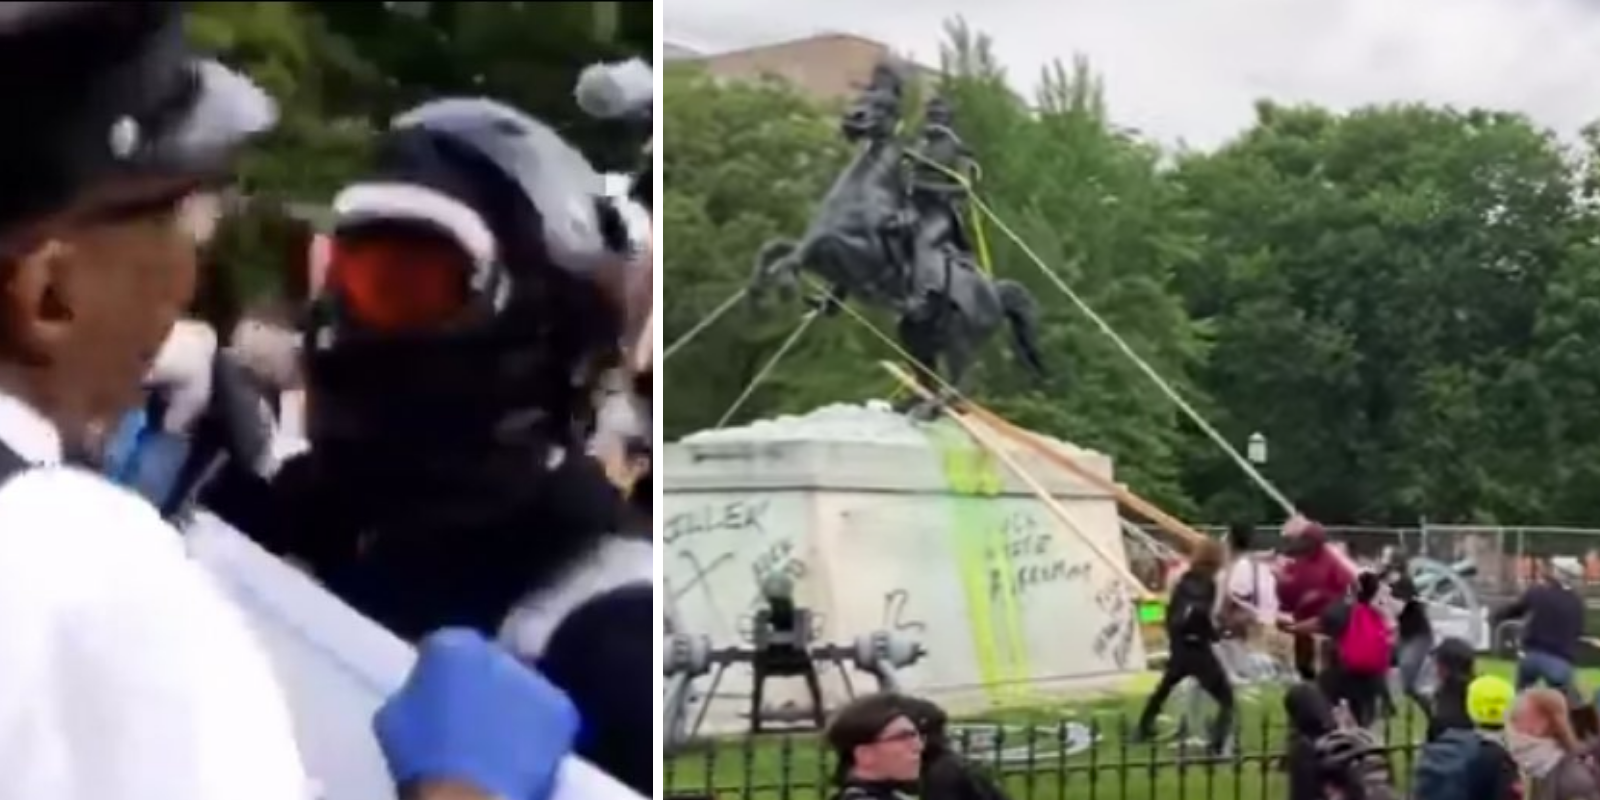 Violent Antifa militant arrested by FBI as 'ringleader' of attempt to topple statue of Andrew Jackson